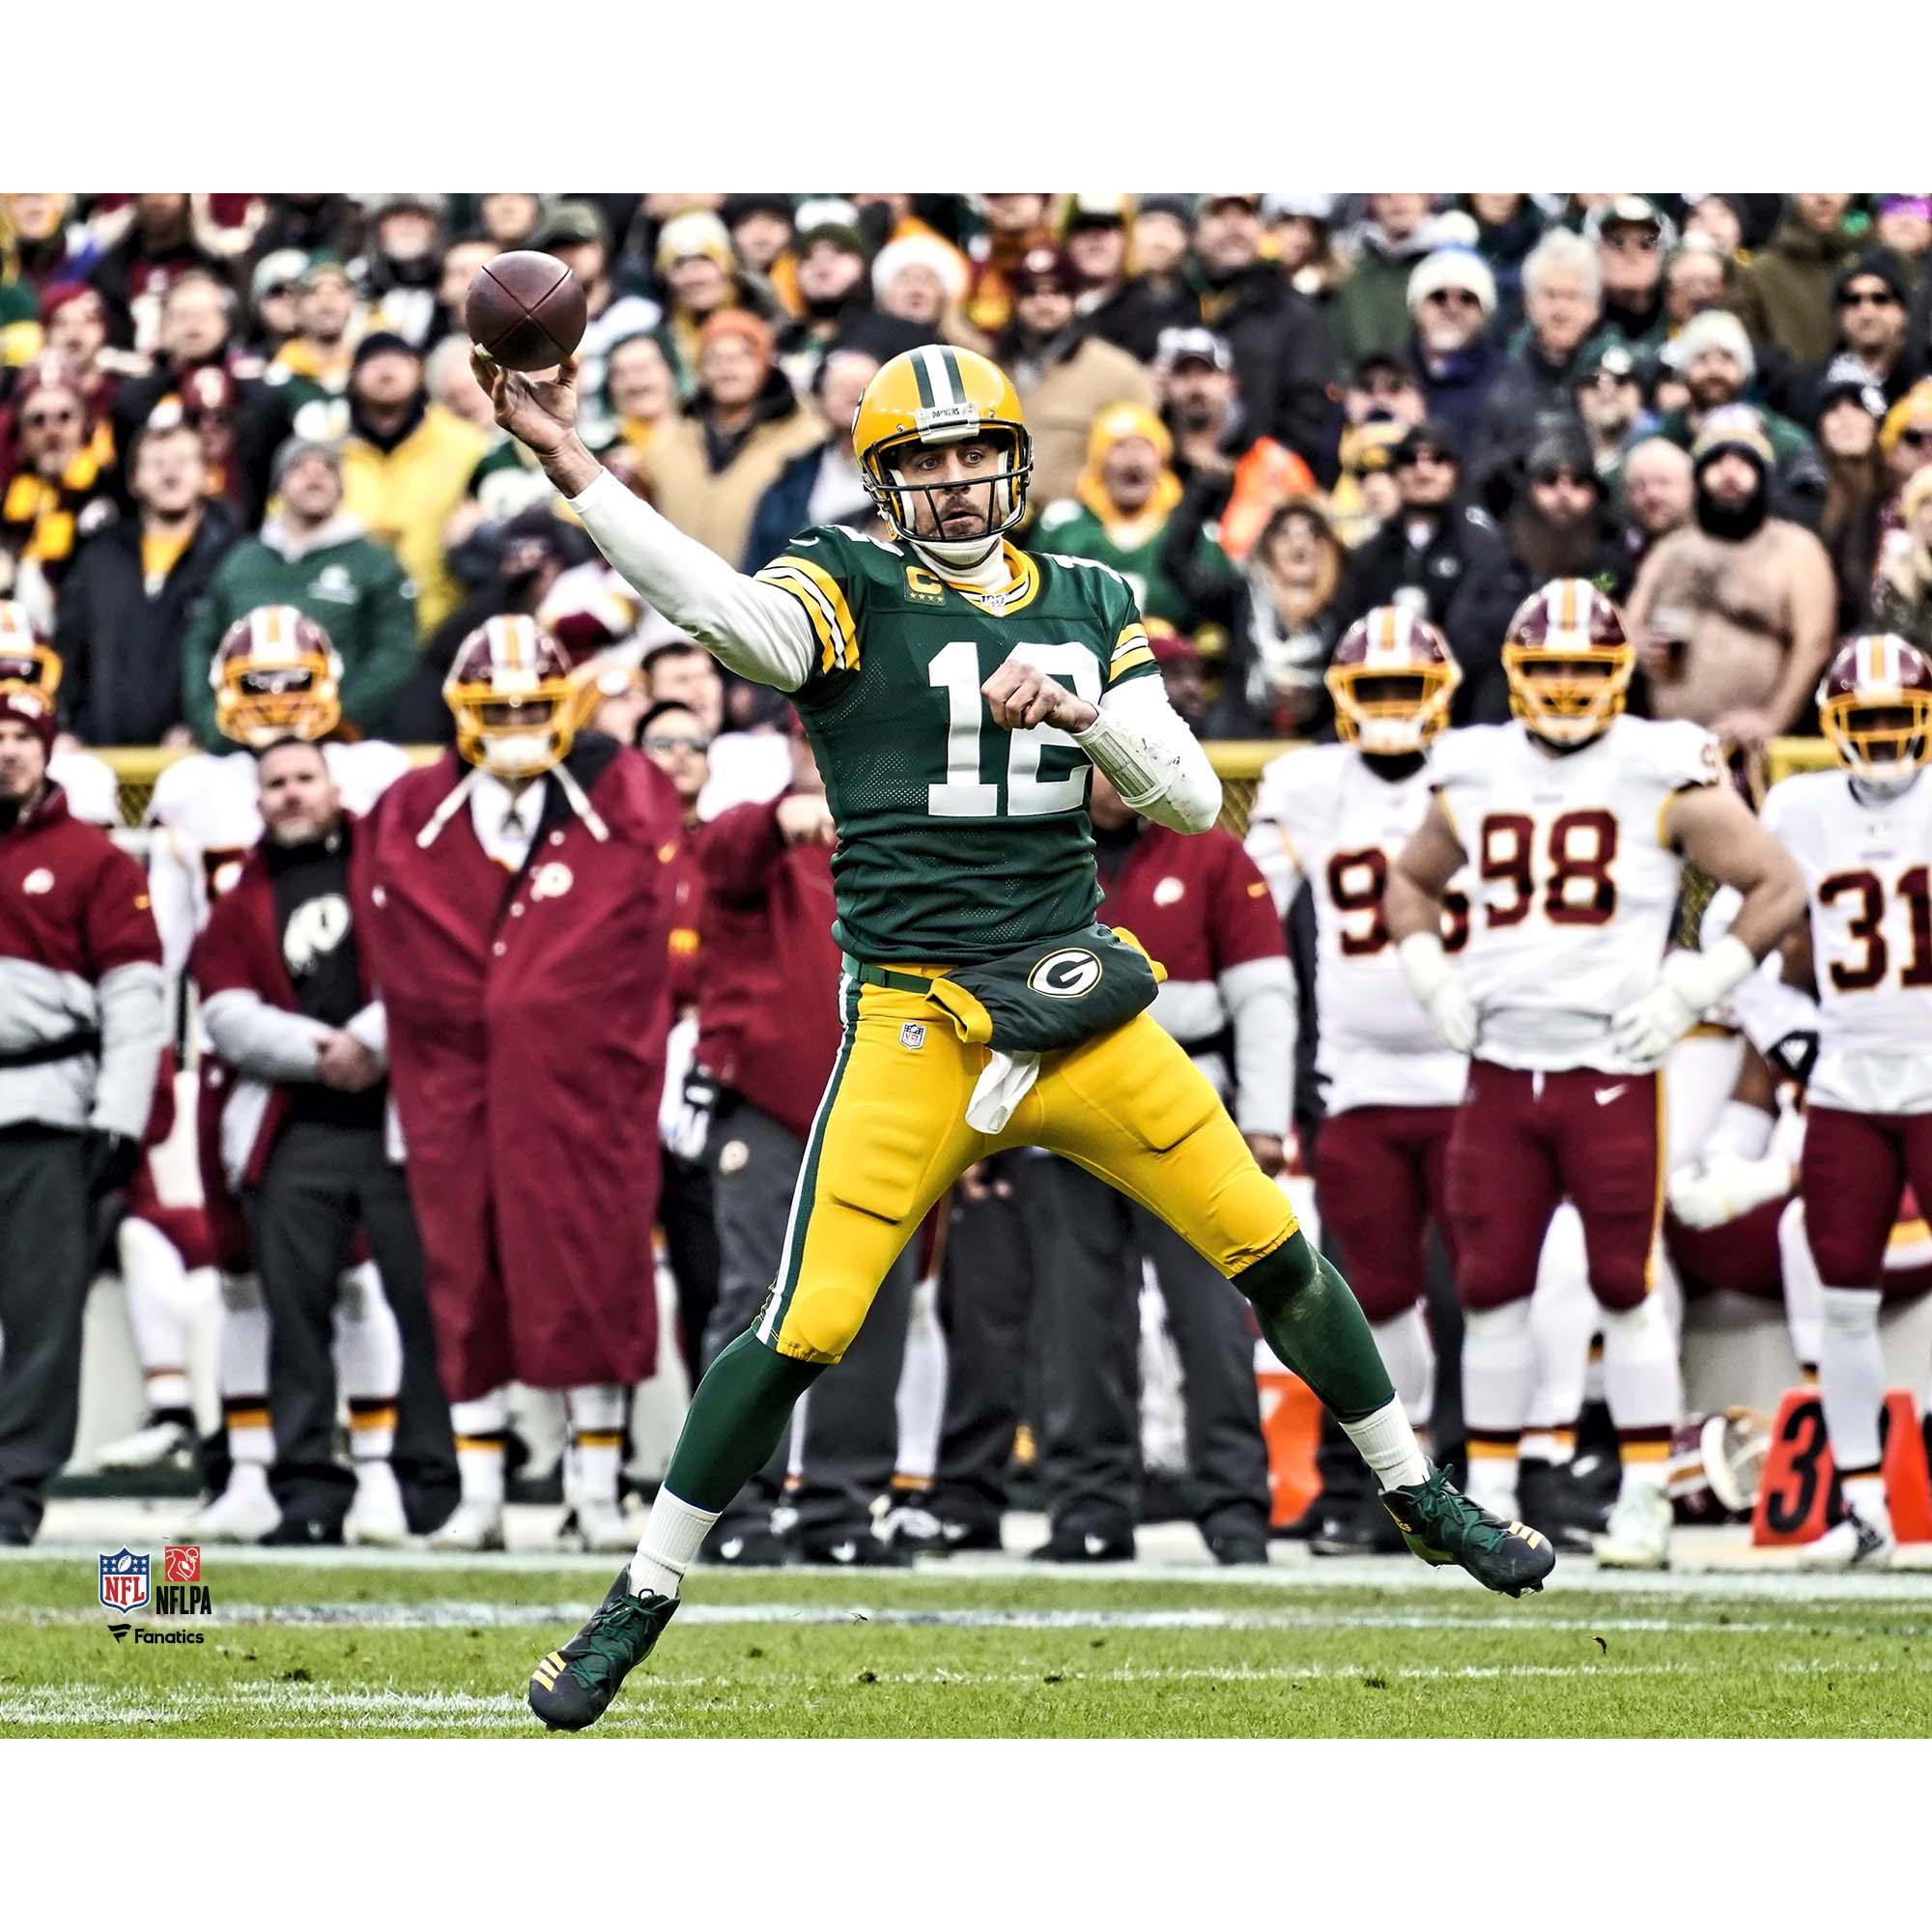 Aaron Rodgers Green Bay Packers Fanatics Authentic Unsigned Throwing vs. Washington Redskins Photograph